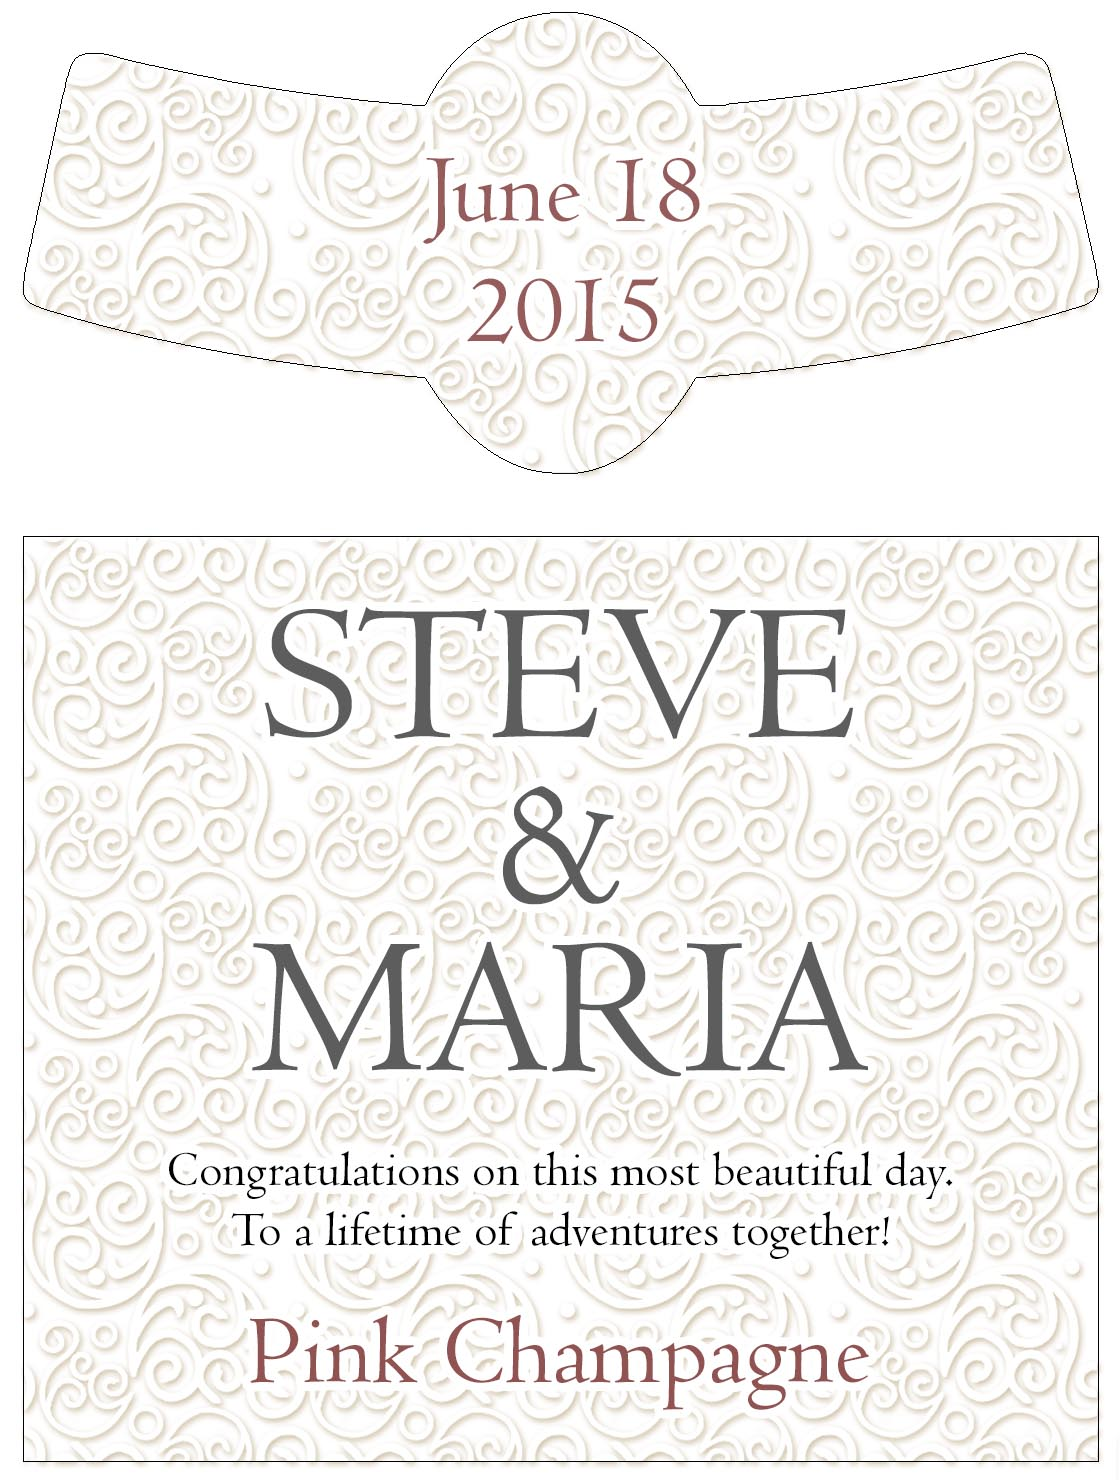 A swirly design custom wedding wine labels on a pure white background